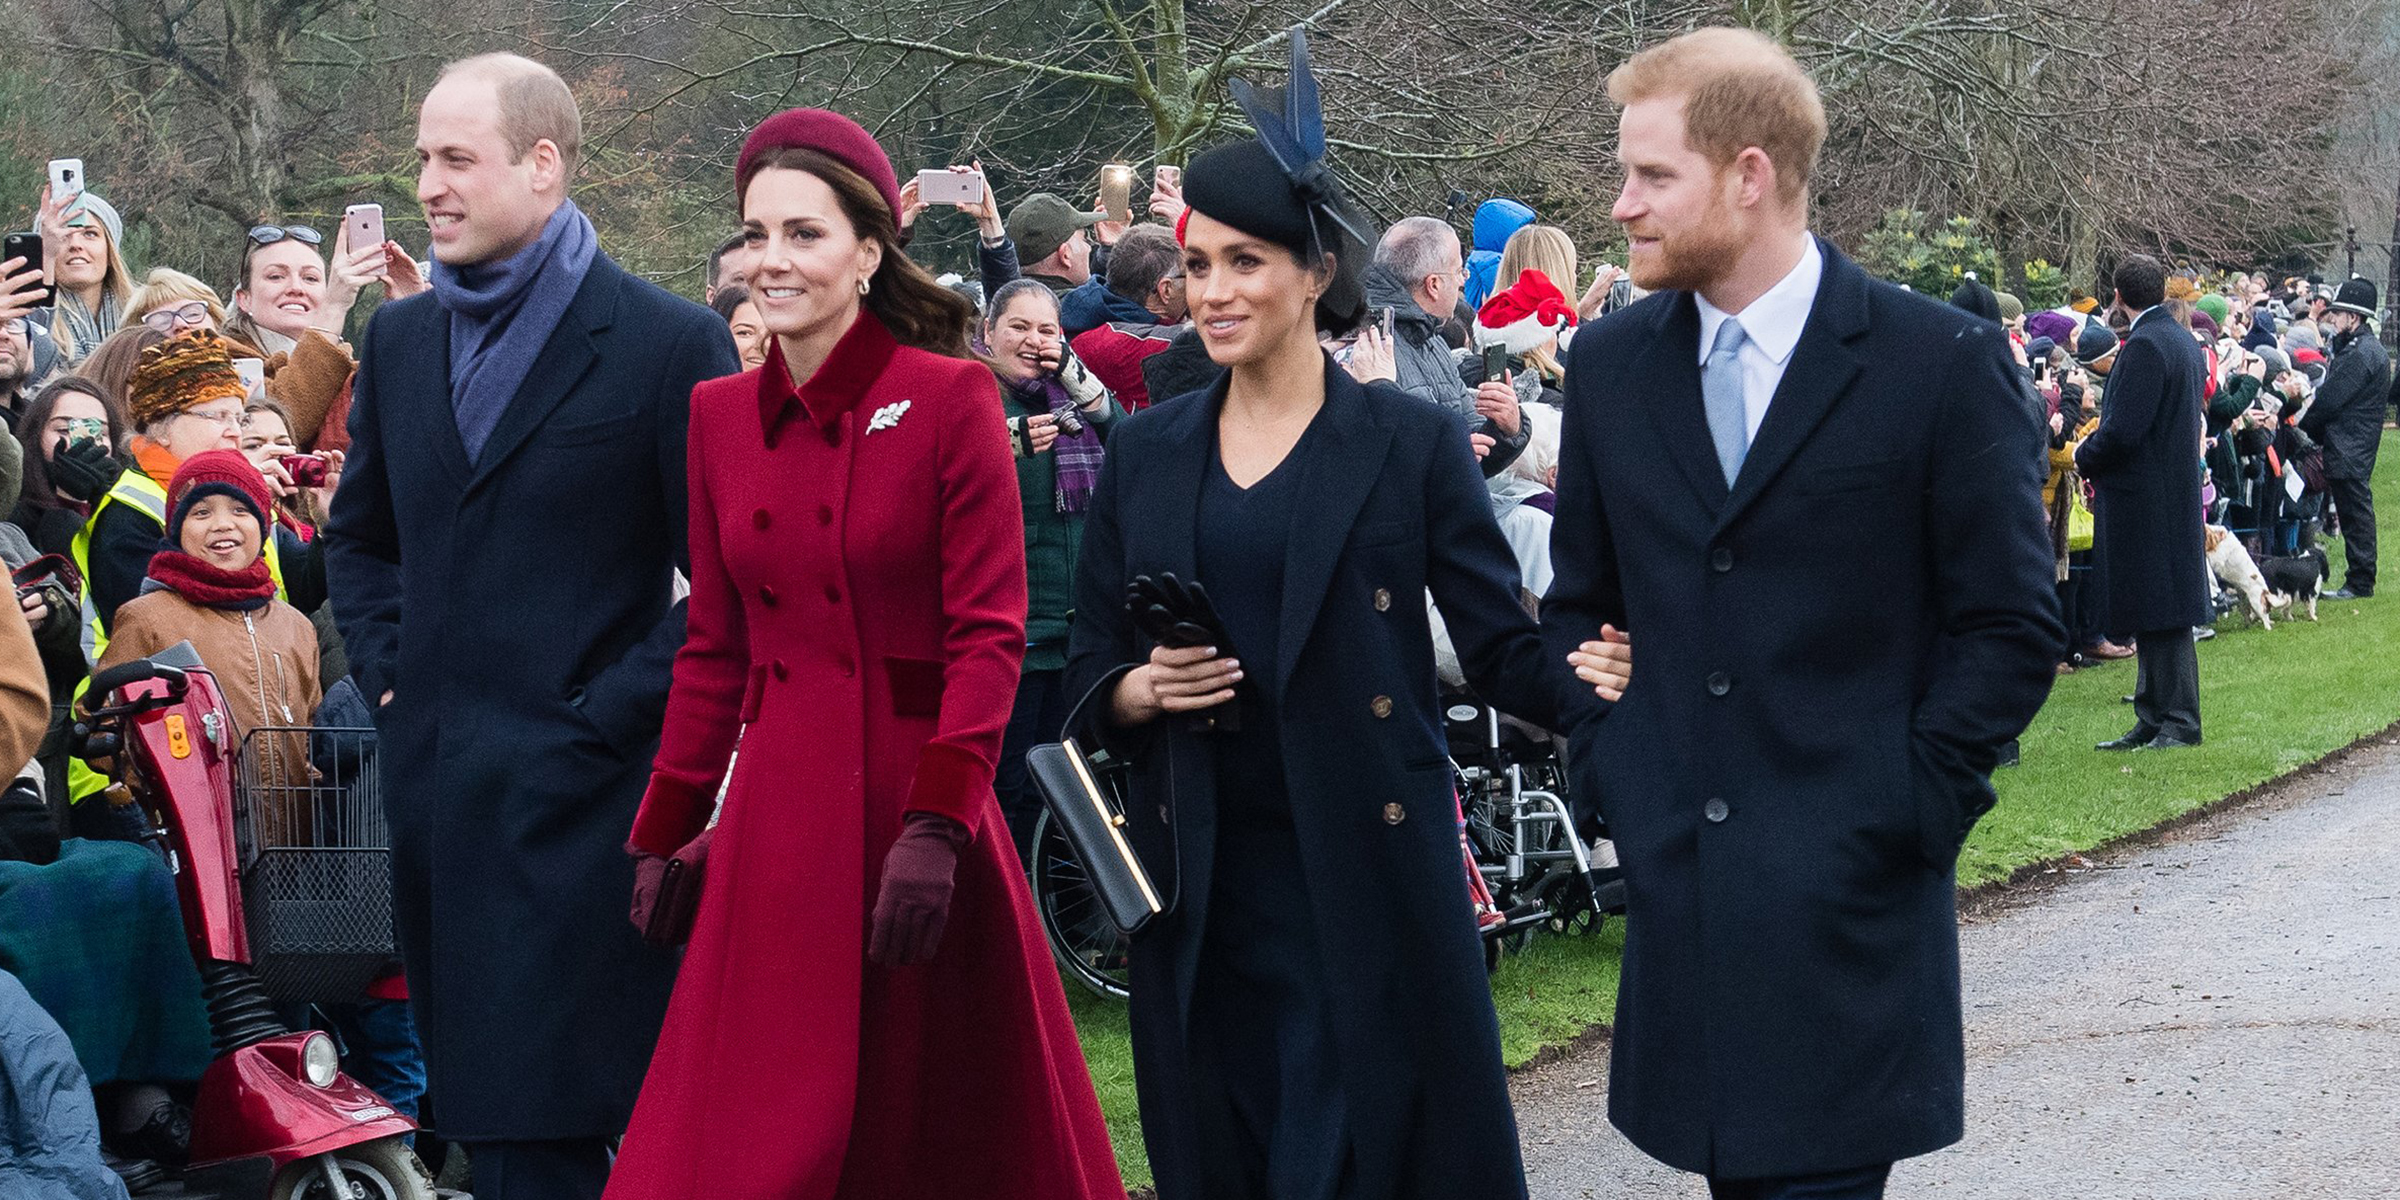 583a9ccfd Prince Harry and Meghan Markle unfollowed Prince William and Kate Middleton  — here s why